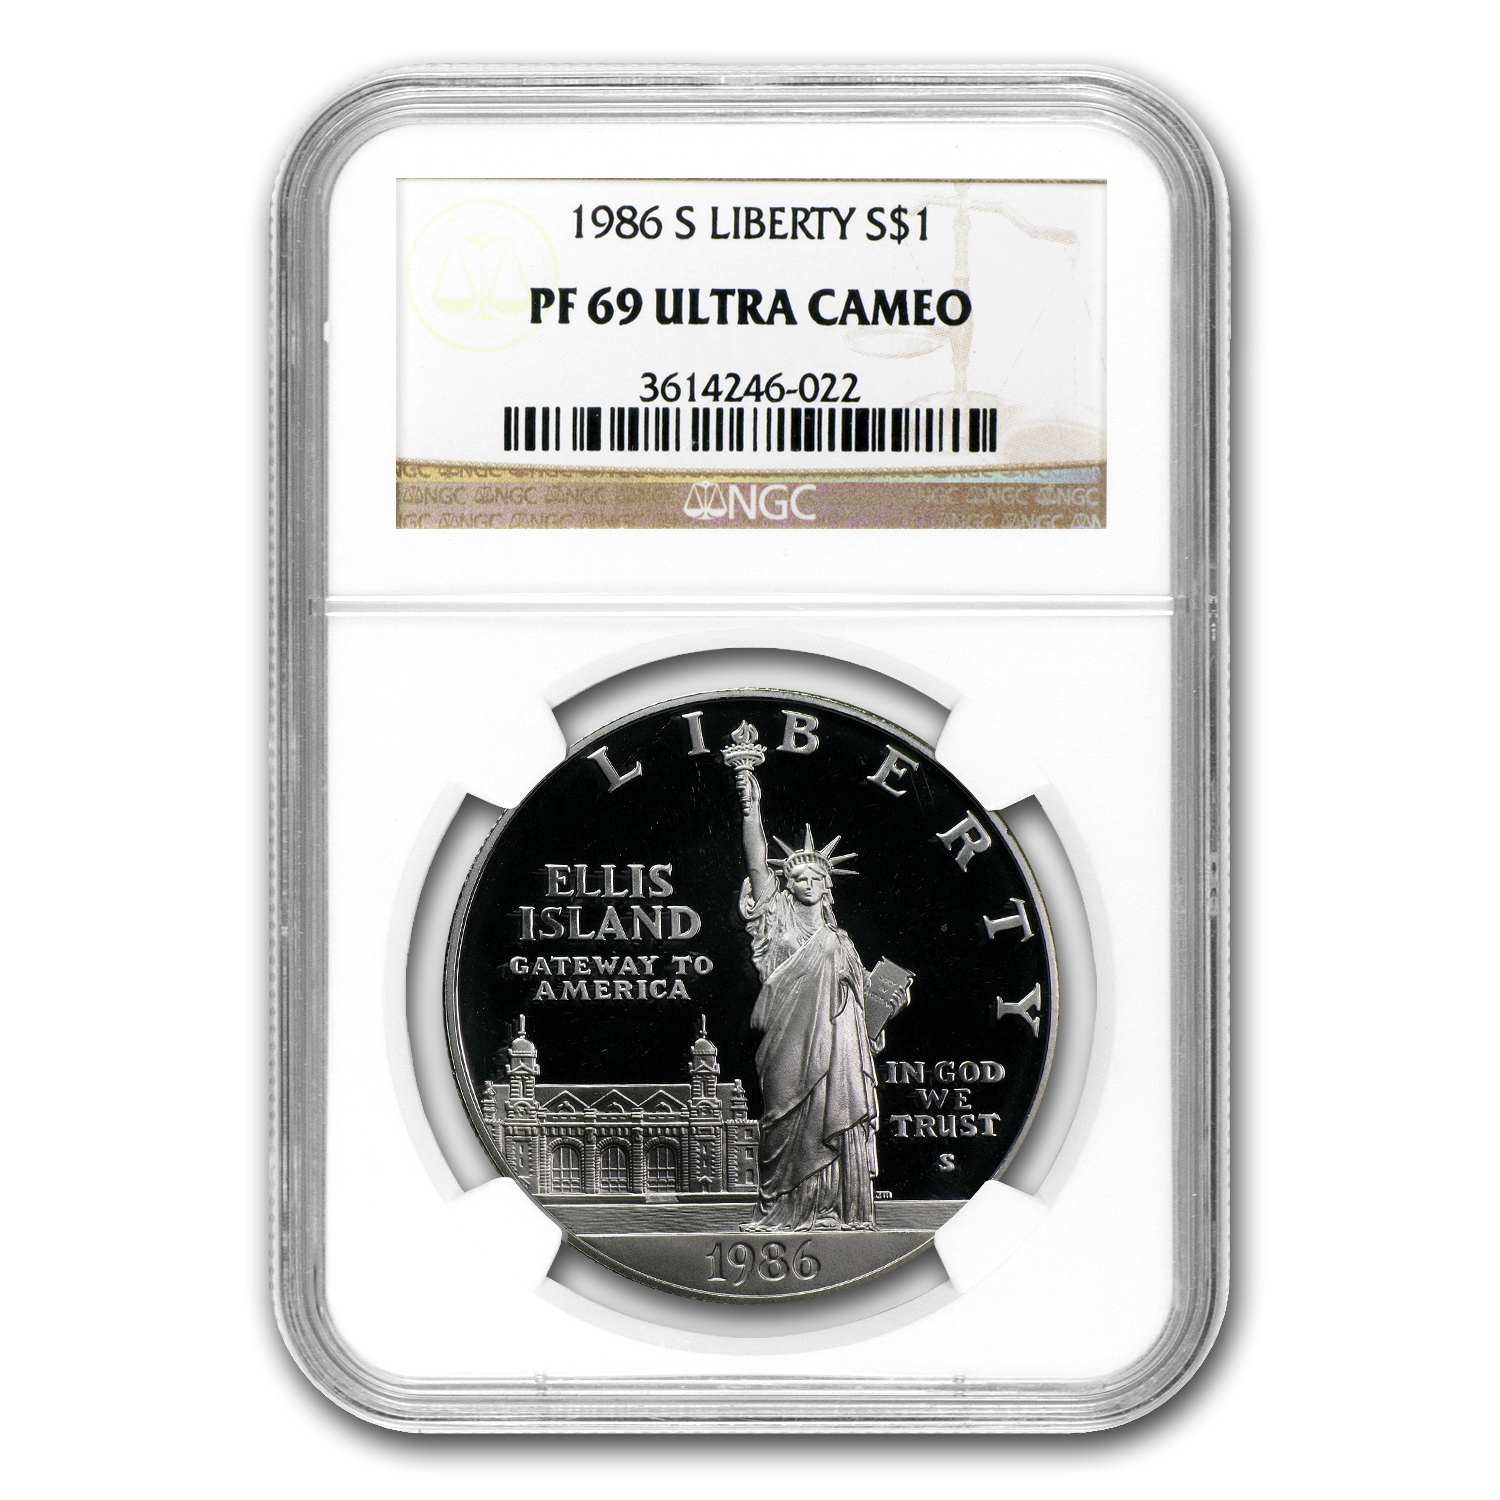 1986-S Statue of Liberty $1 Silver Commemorative - PF-69 UCAM NGC